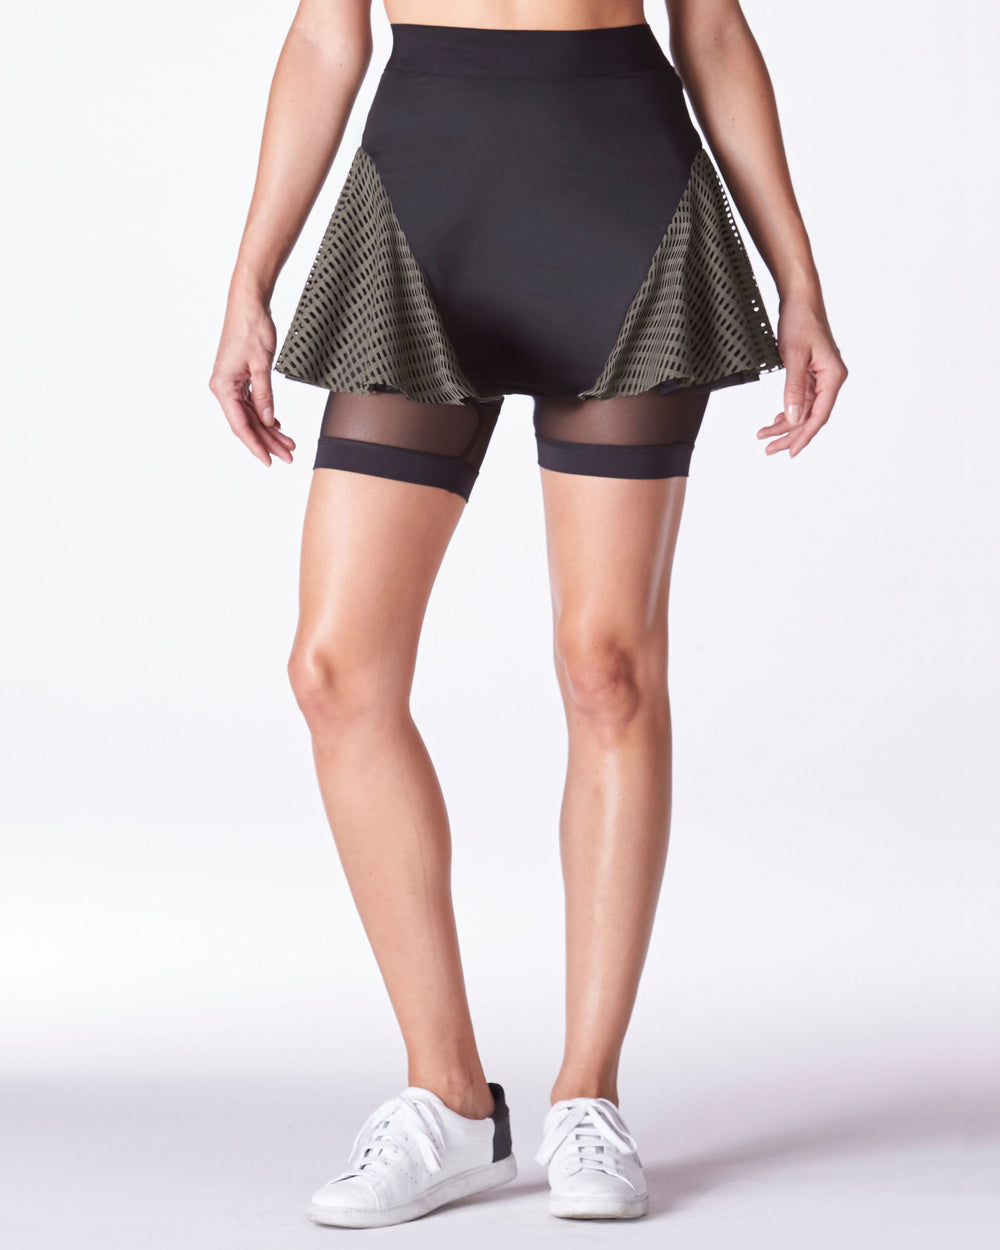 Majors Tennis Skirt - Olive Black Grid